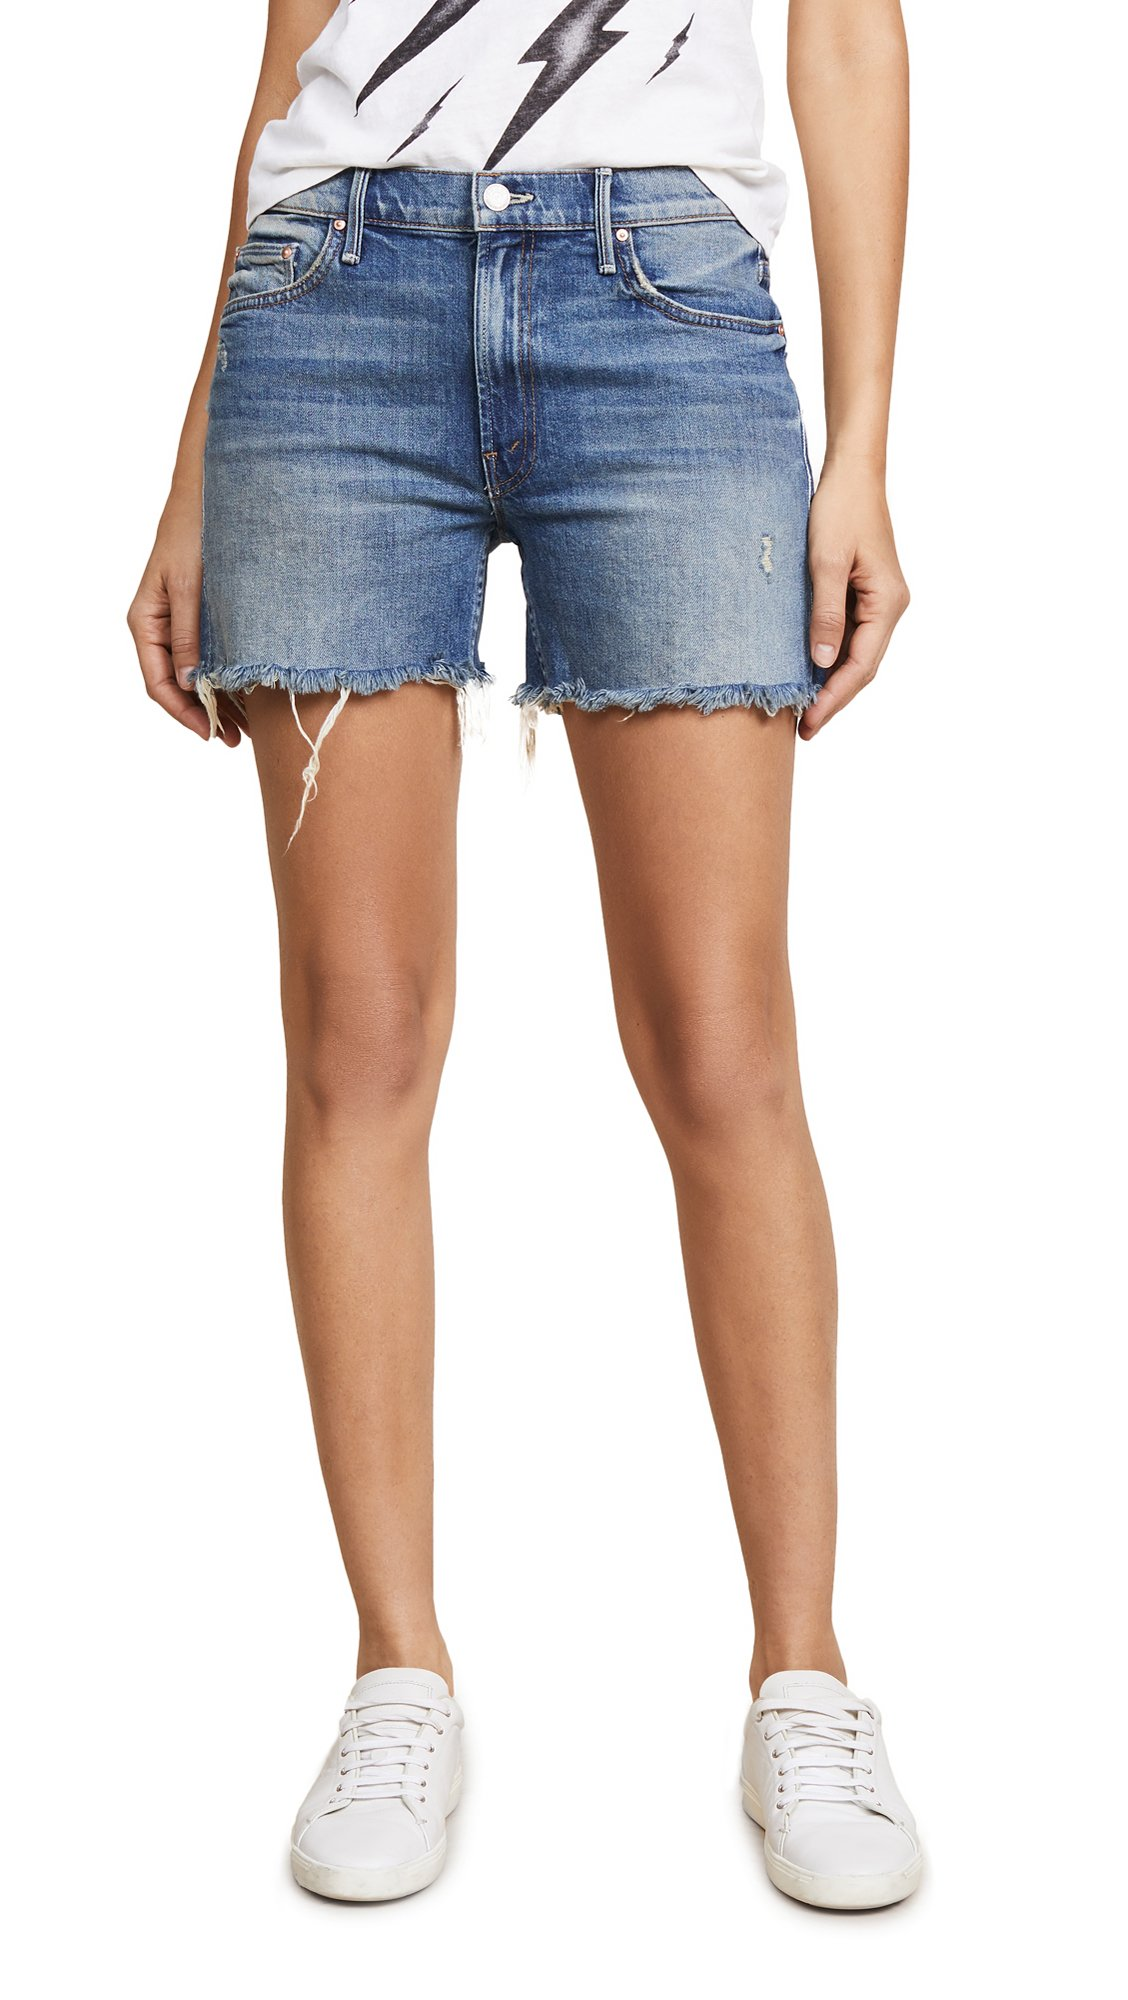 MOTHER Women's The Sinner Fray Shorts, Playing Dirty, 31